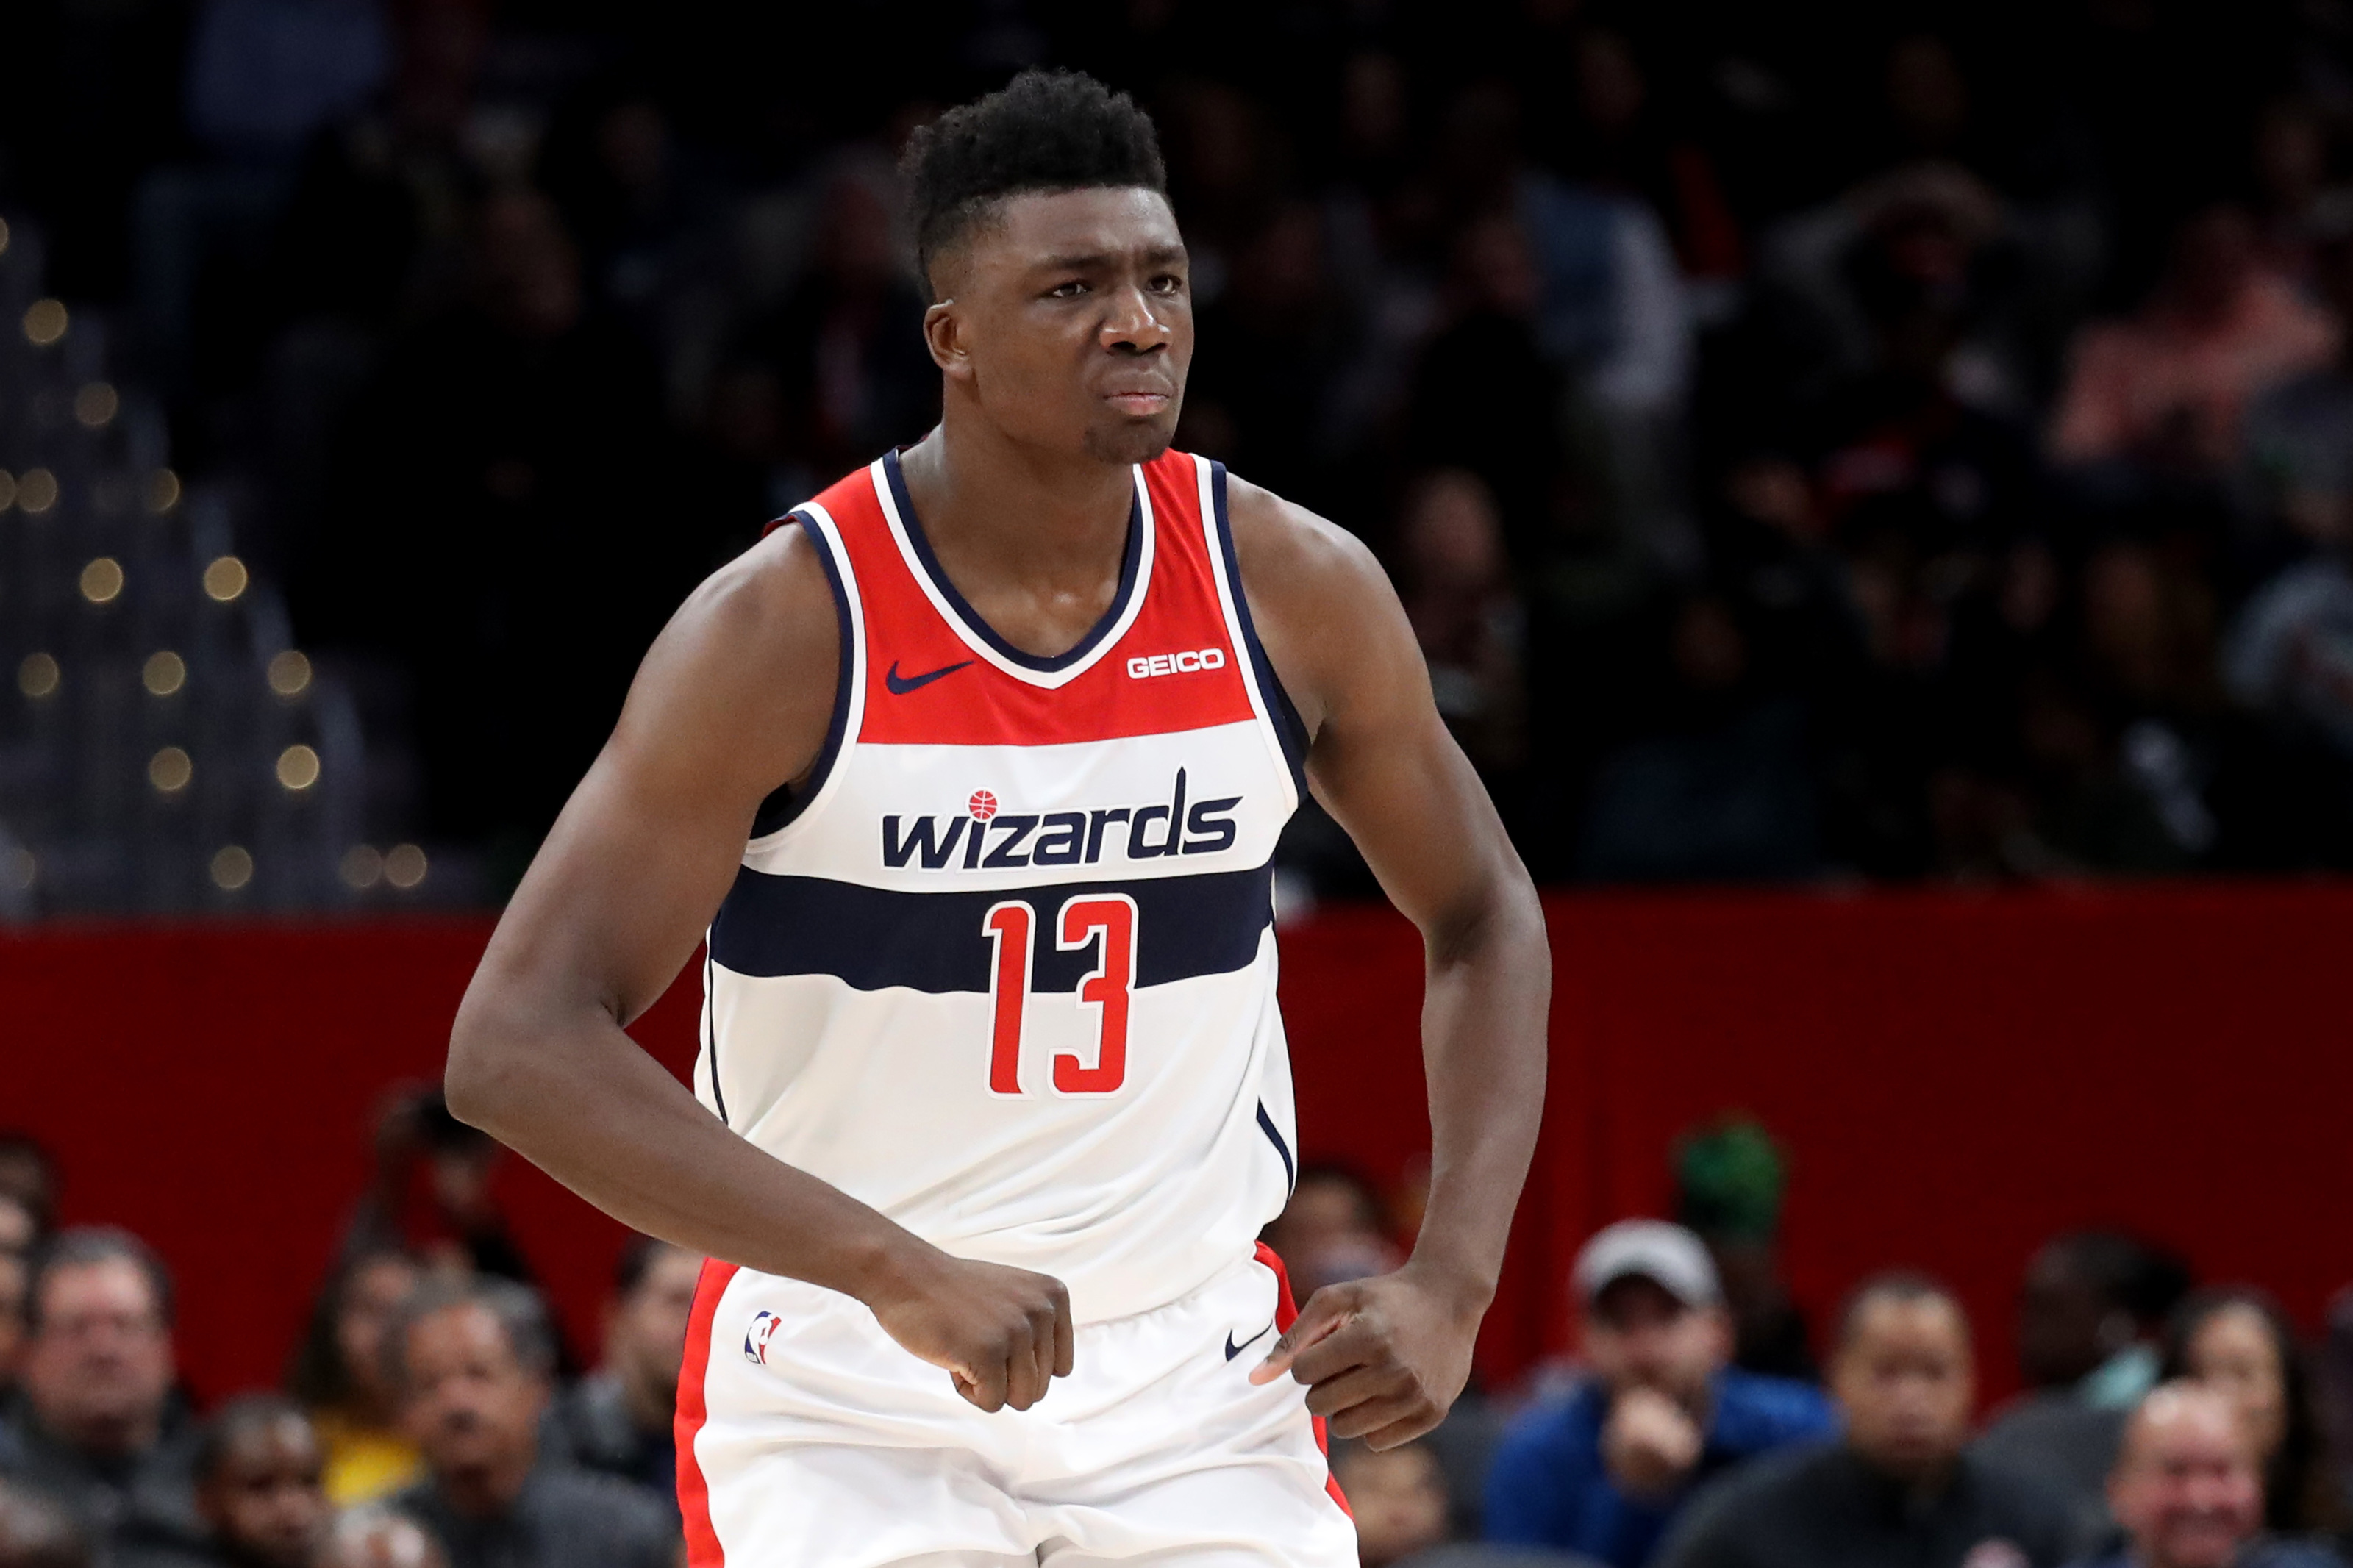 Indiana Basketball Thomas Bryant Out Again For The Wizards